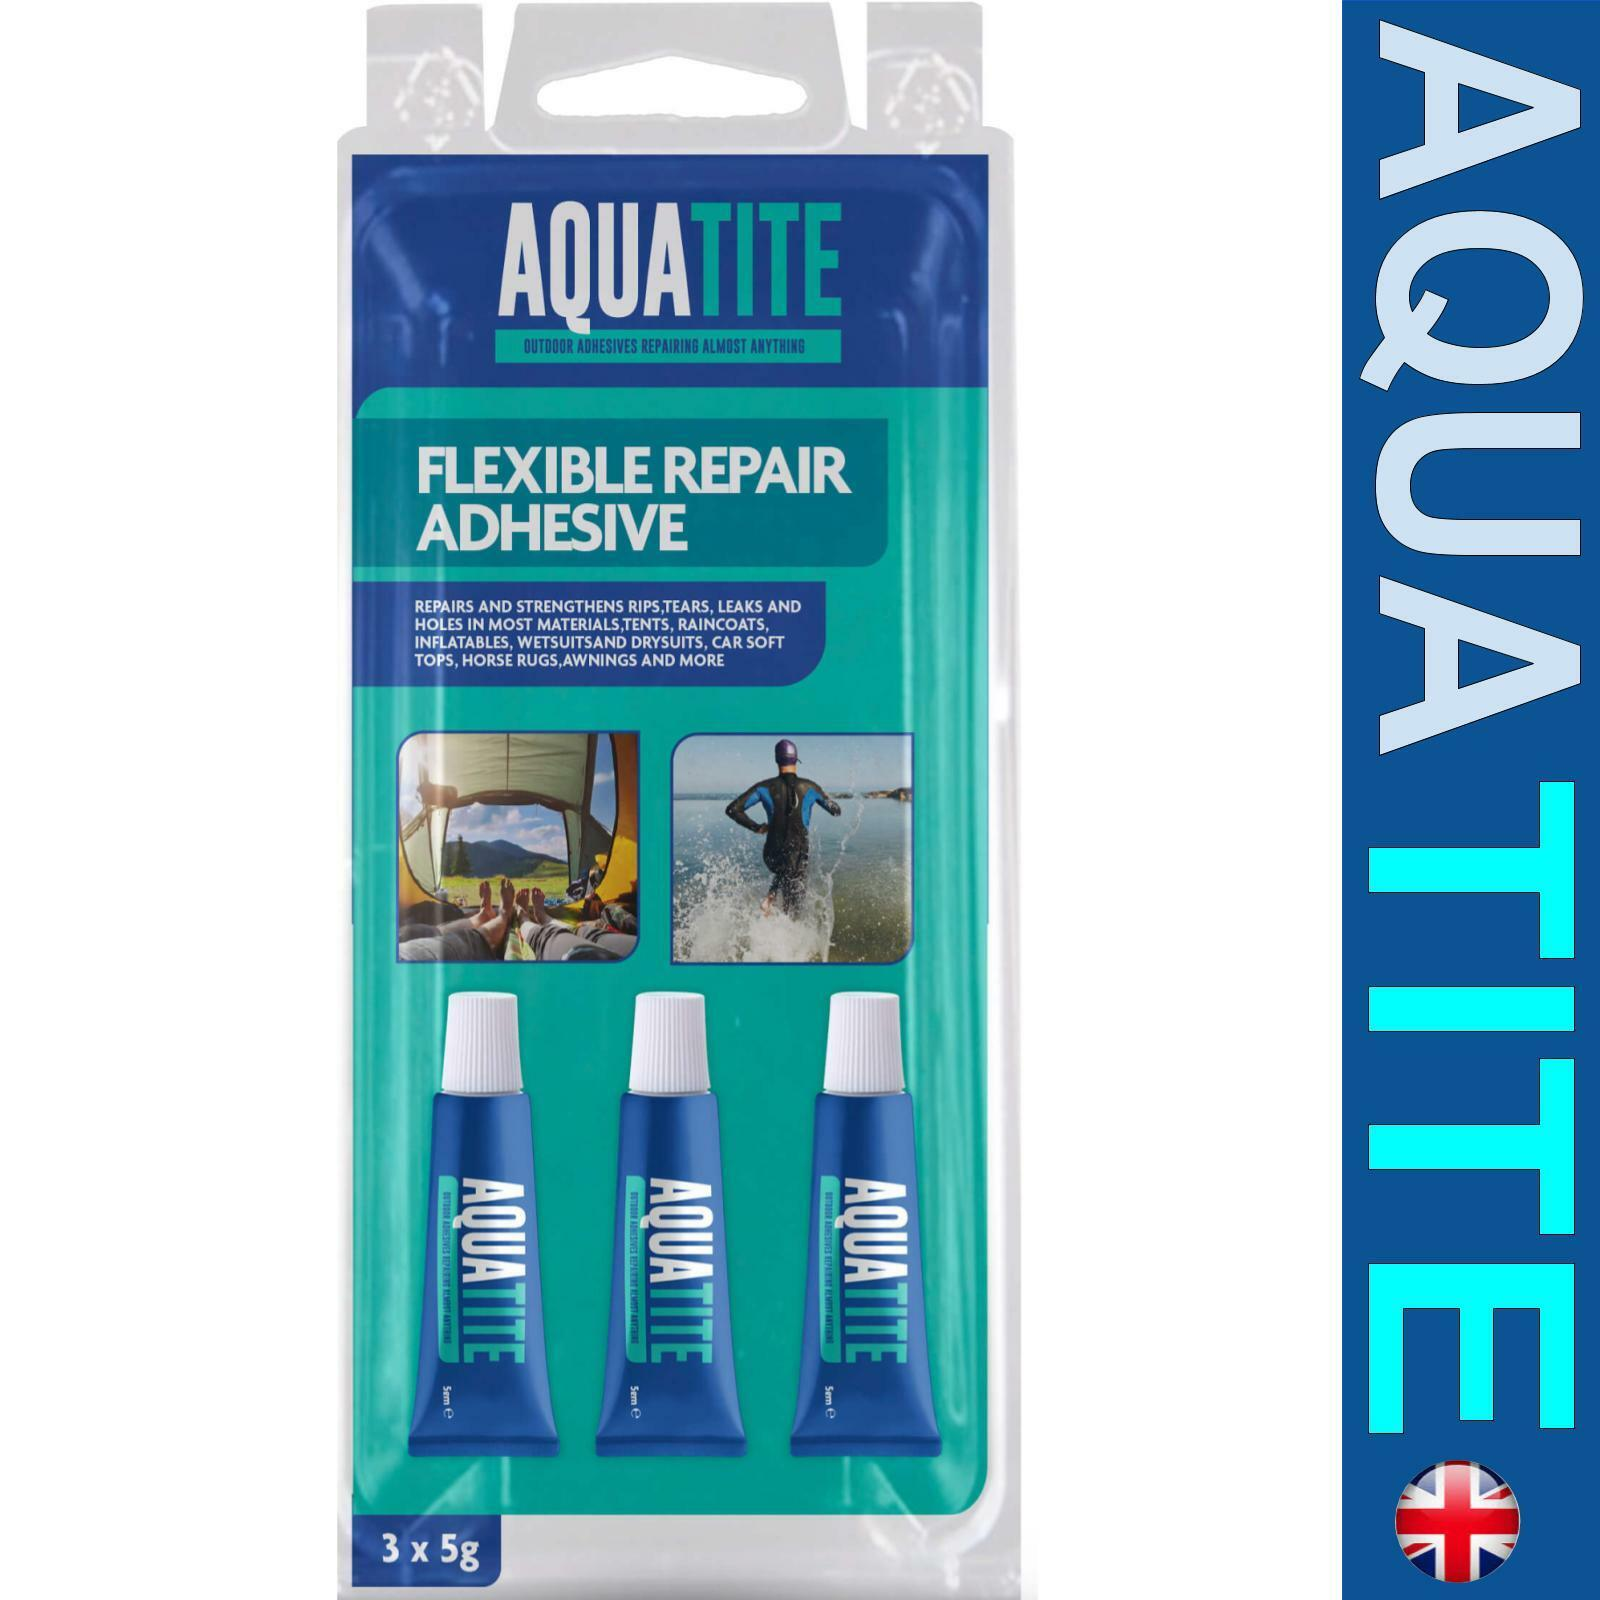 AquaTite Flexible Repair Adhesive Glue Repairs Mend Rips